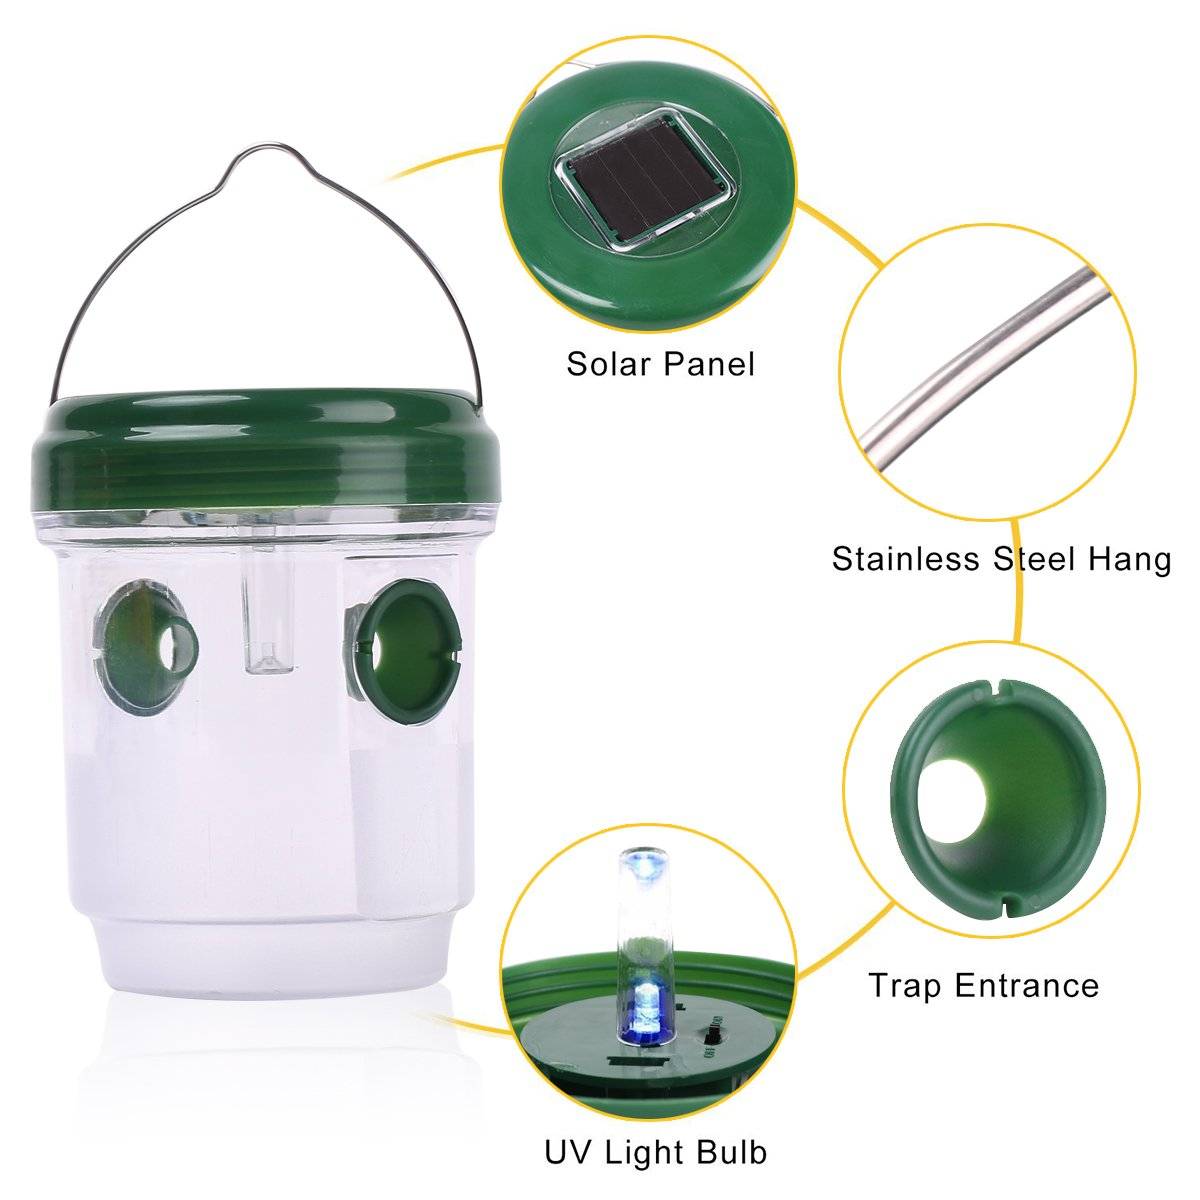 HUYIJJH Wasp Trap Catcher Solar Powered Killer Repellent Outdoor Reusable with Ultraviolet LED Light for Bees, Wasps, Hornets, Yellow Jackets and More (2 Pack)